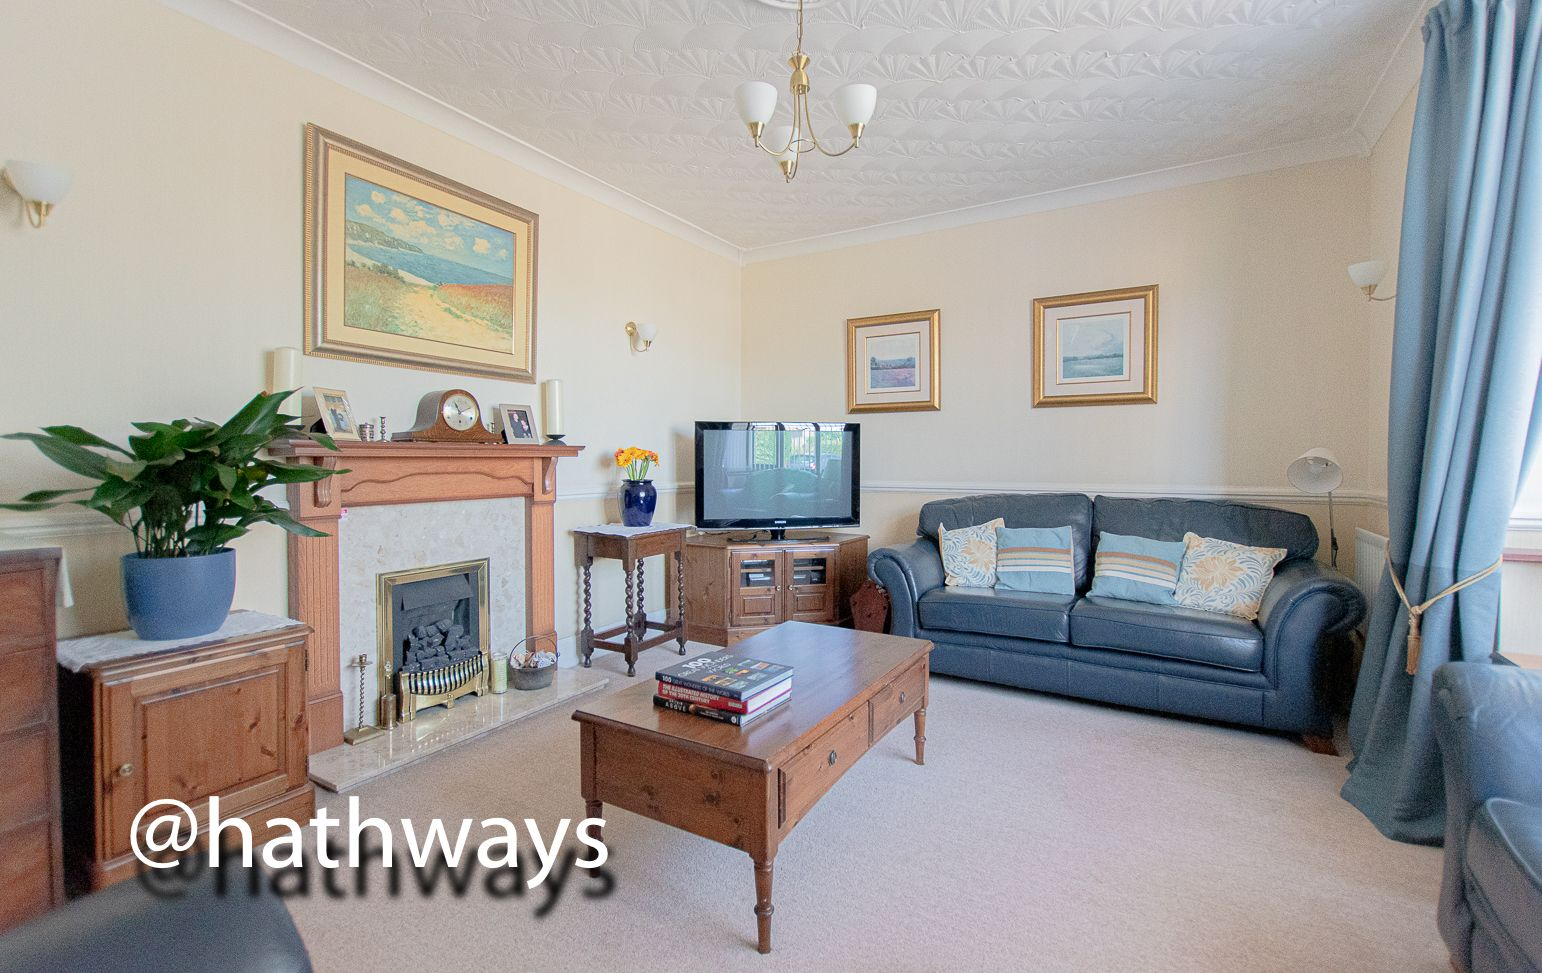 4 bed house for sale in Ashford Close South  - Property Image 6